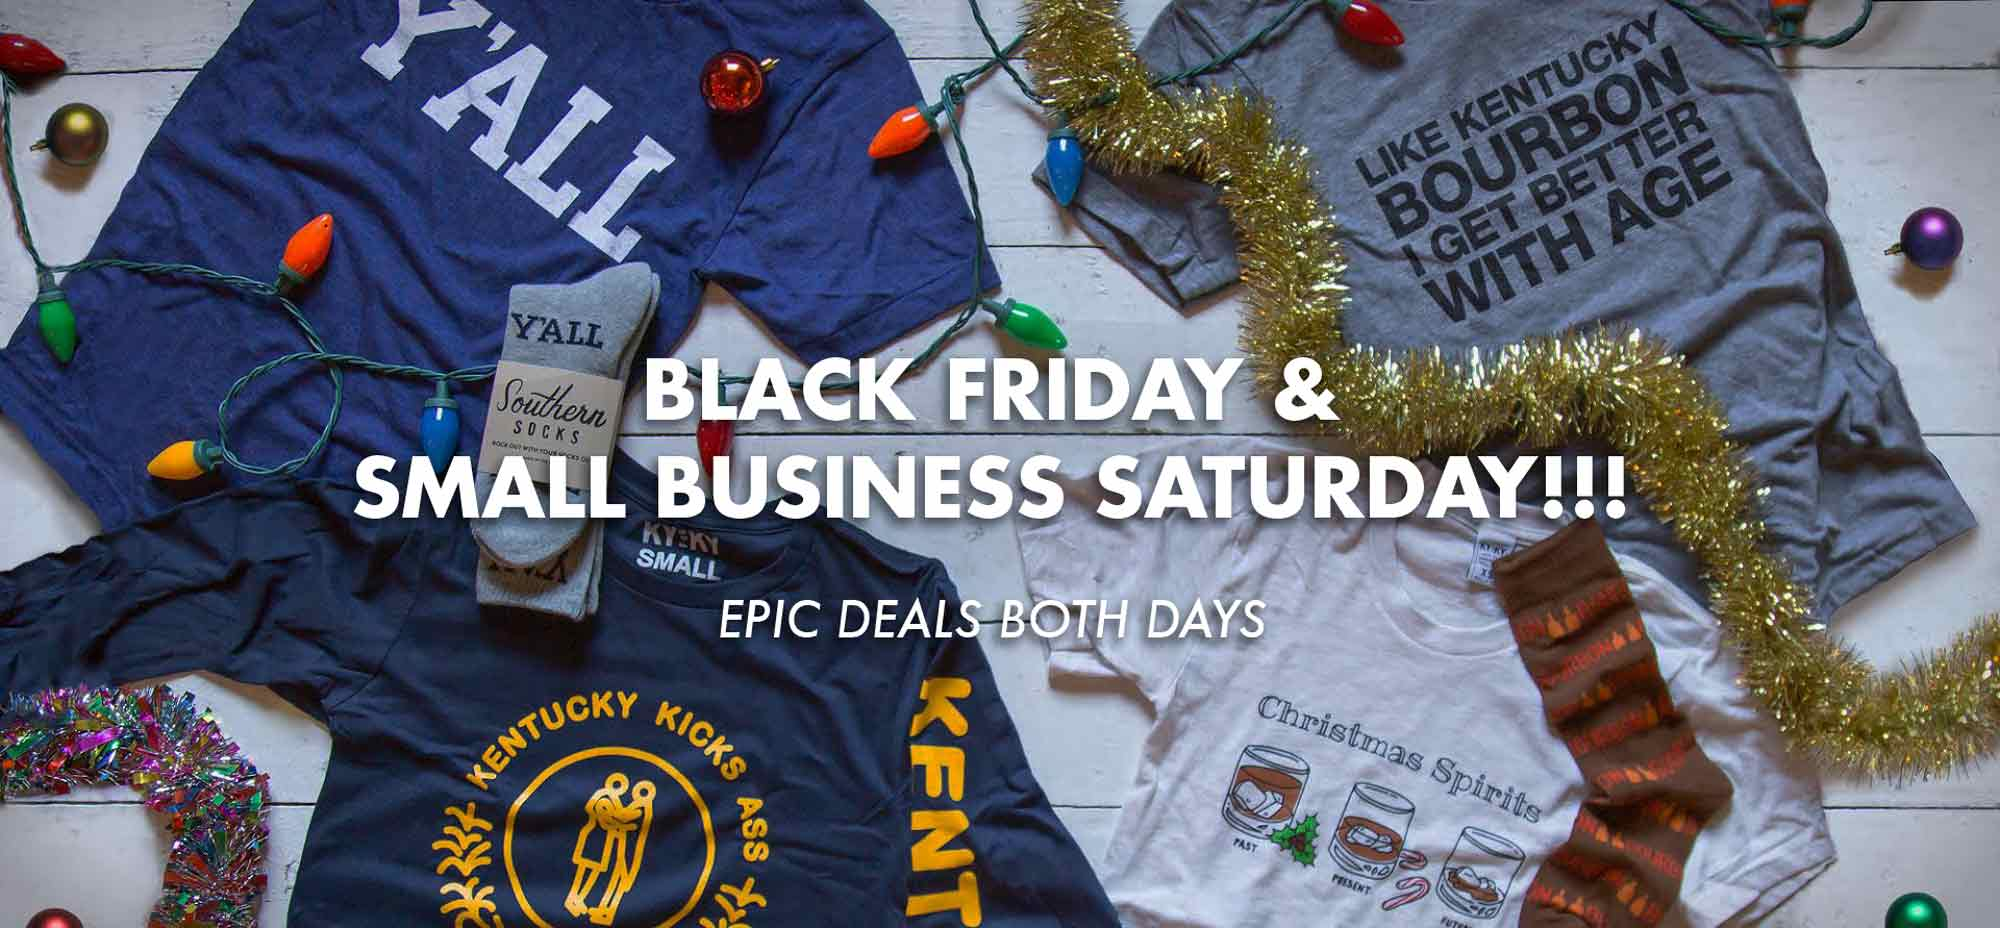 Black Friday Sale + Small Business Saturday!